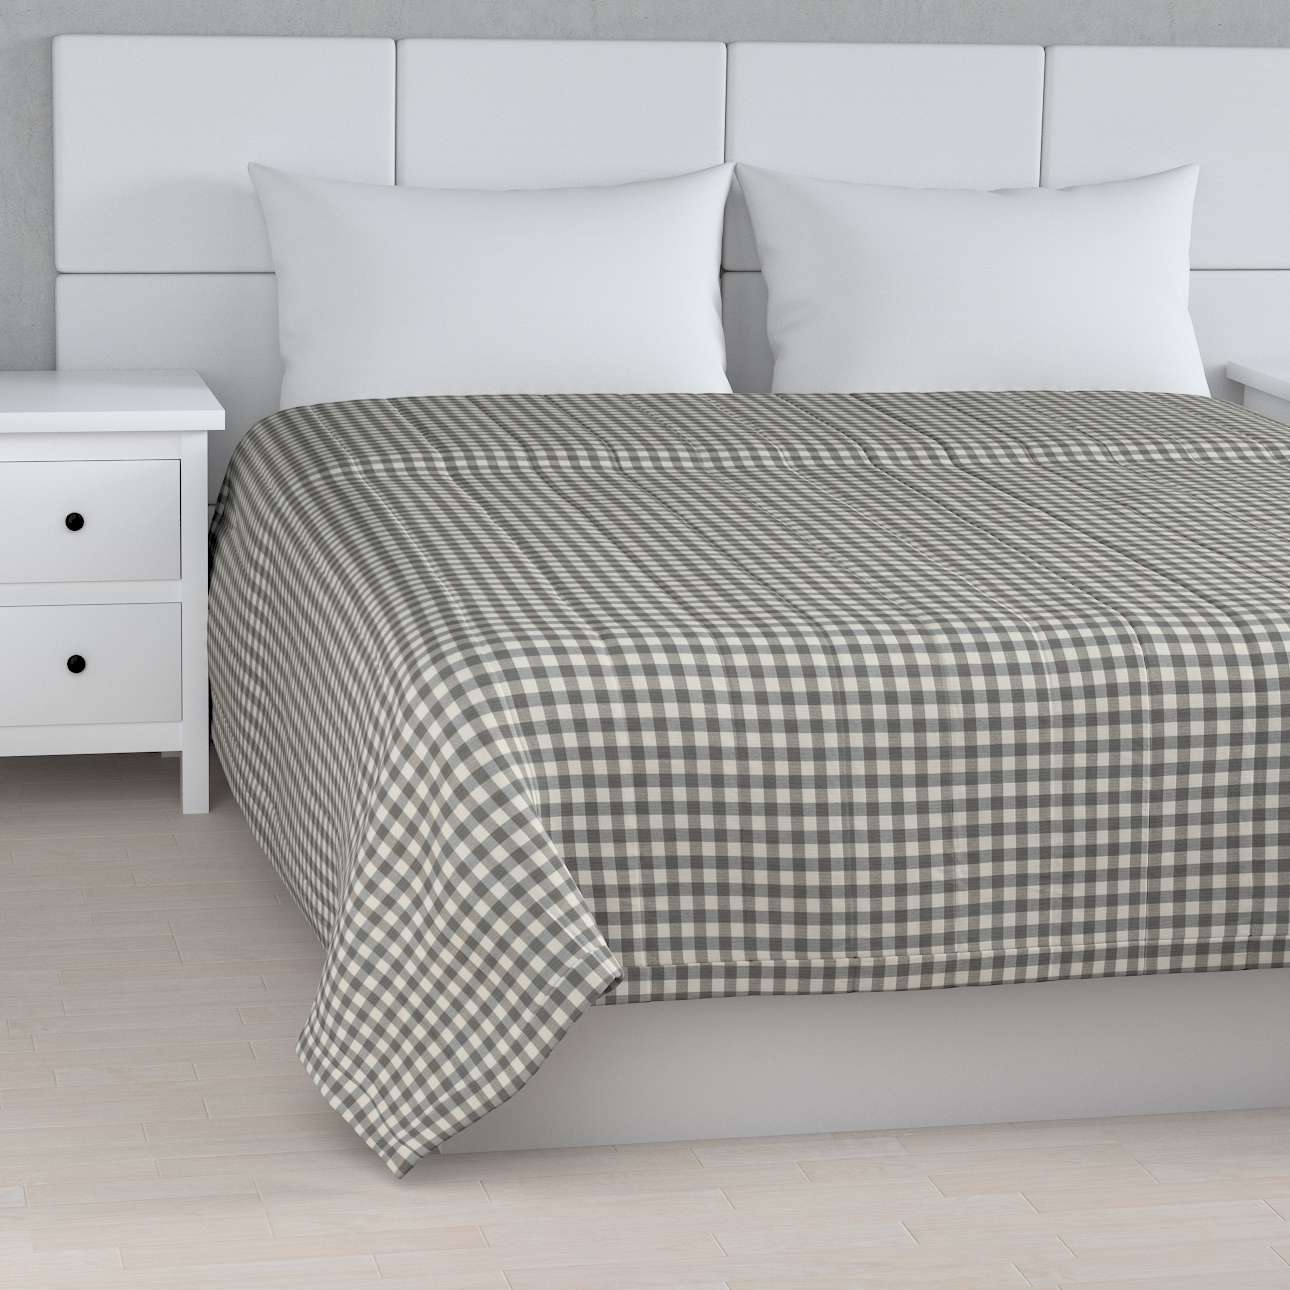 Quilted throw (vertical quilt pattern) 260 x 210 cm (102 x 83 inch) in collection Quadro, fabric: 136-11